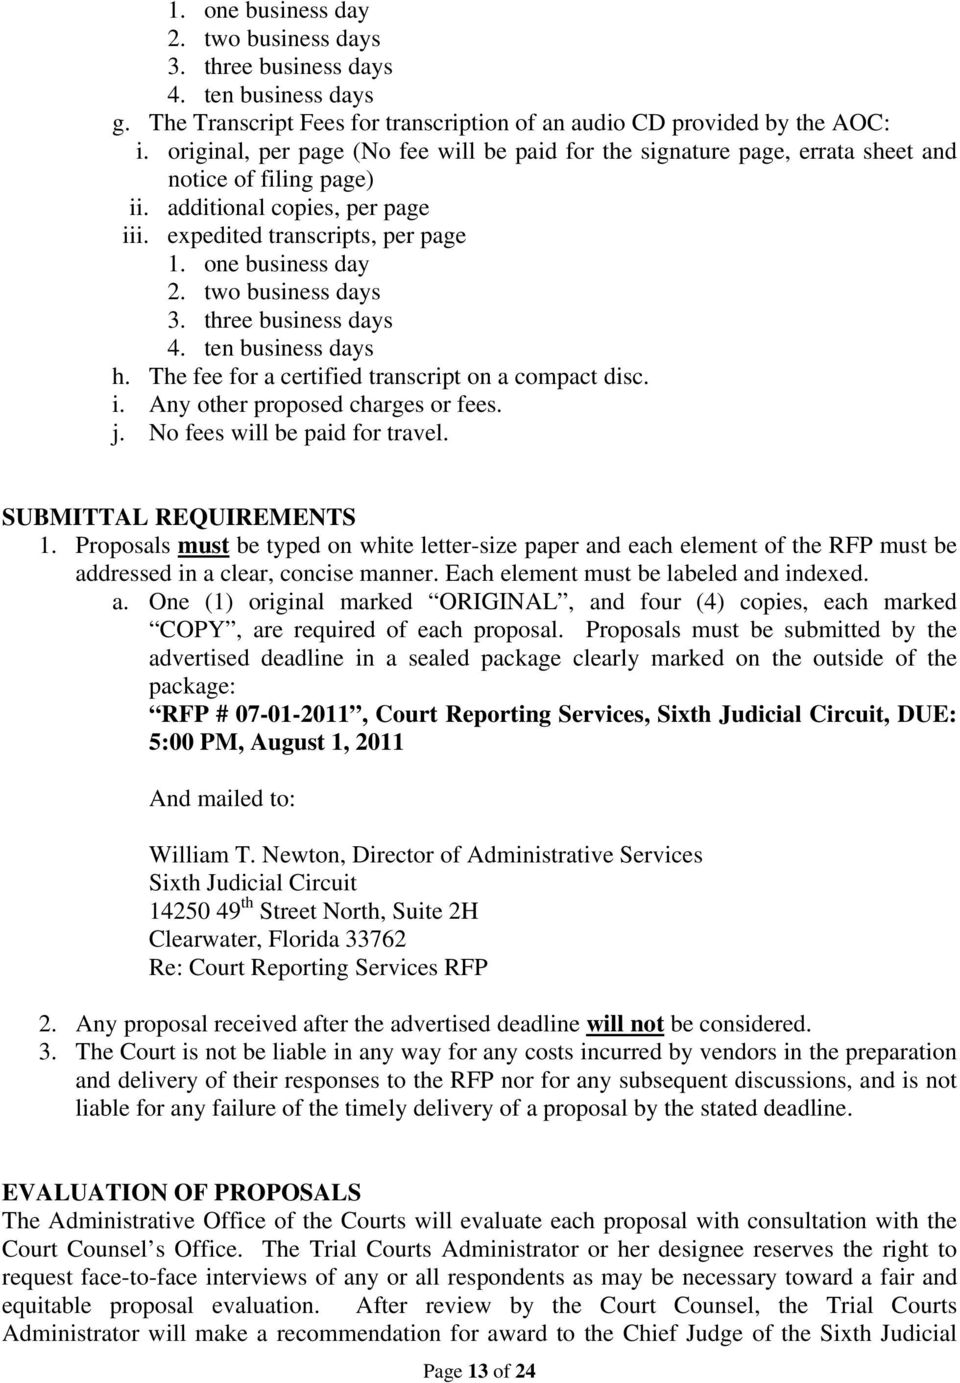 REQUEST FOR PROPOSALS COURT REPORTING SERVICES - PDF